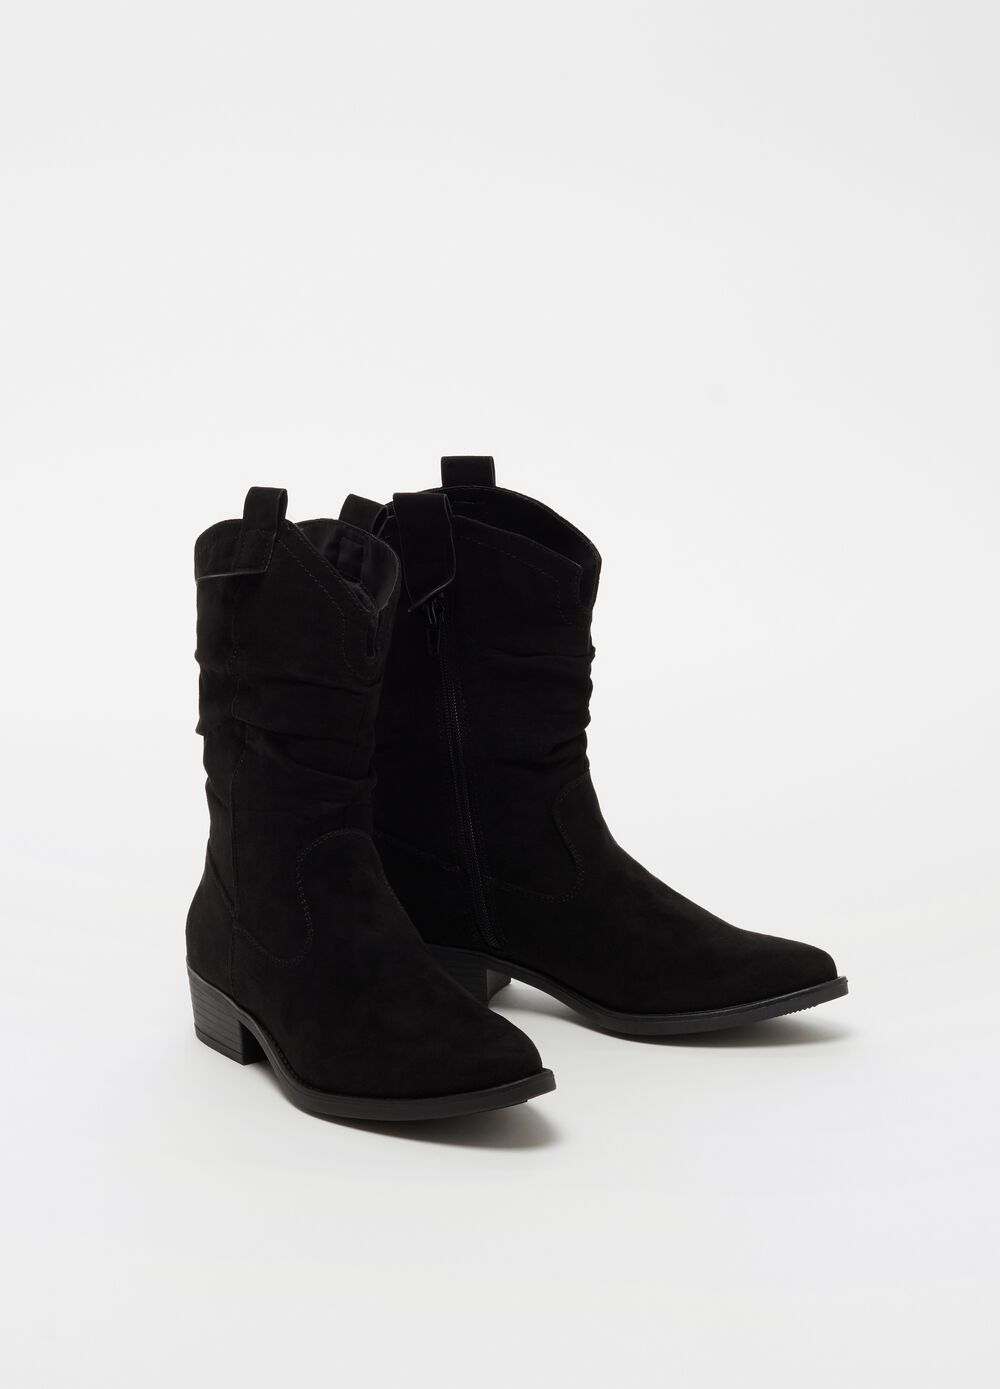 Velvet-effect ankle boots with chunky heels